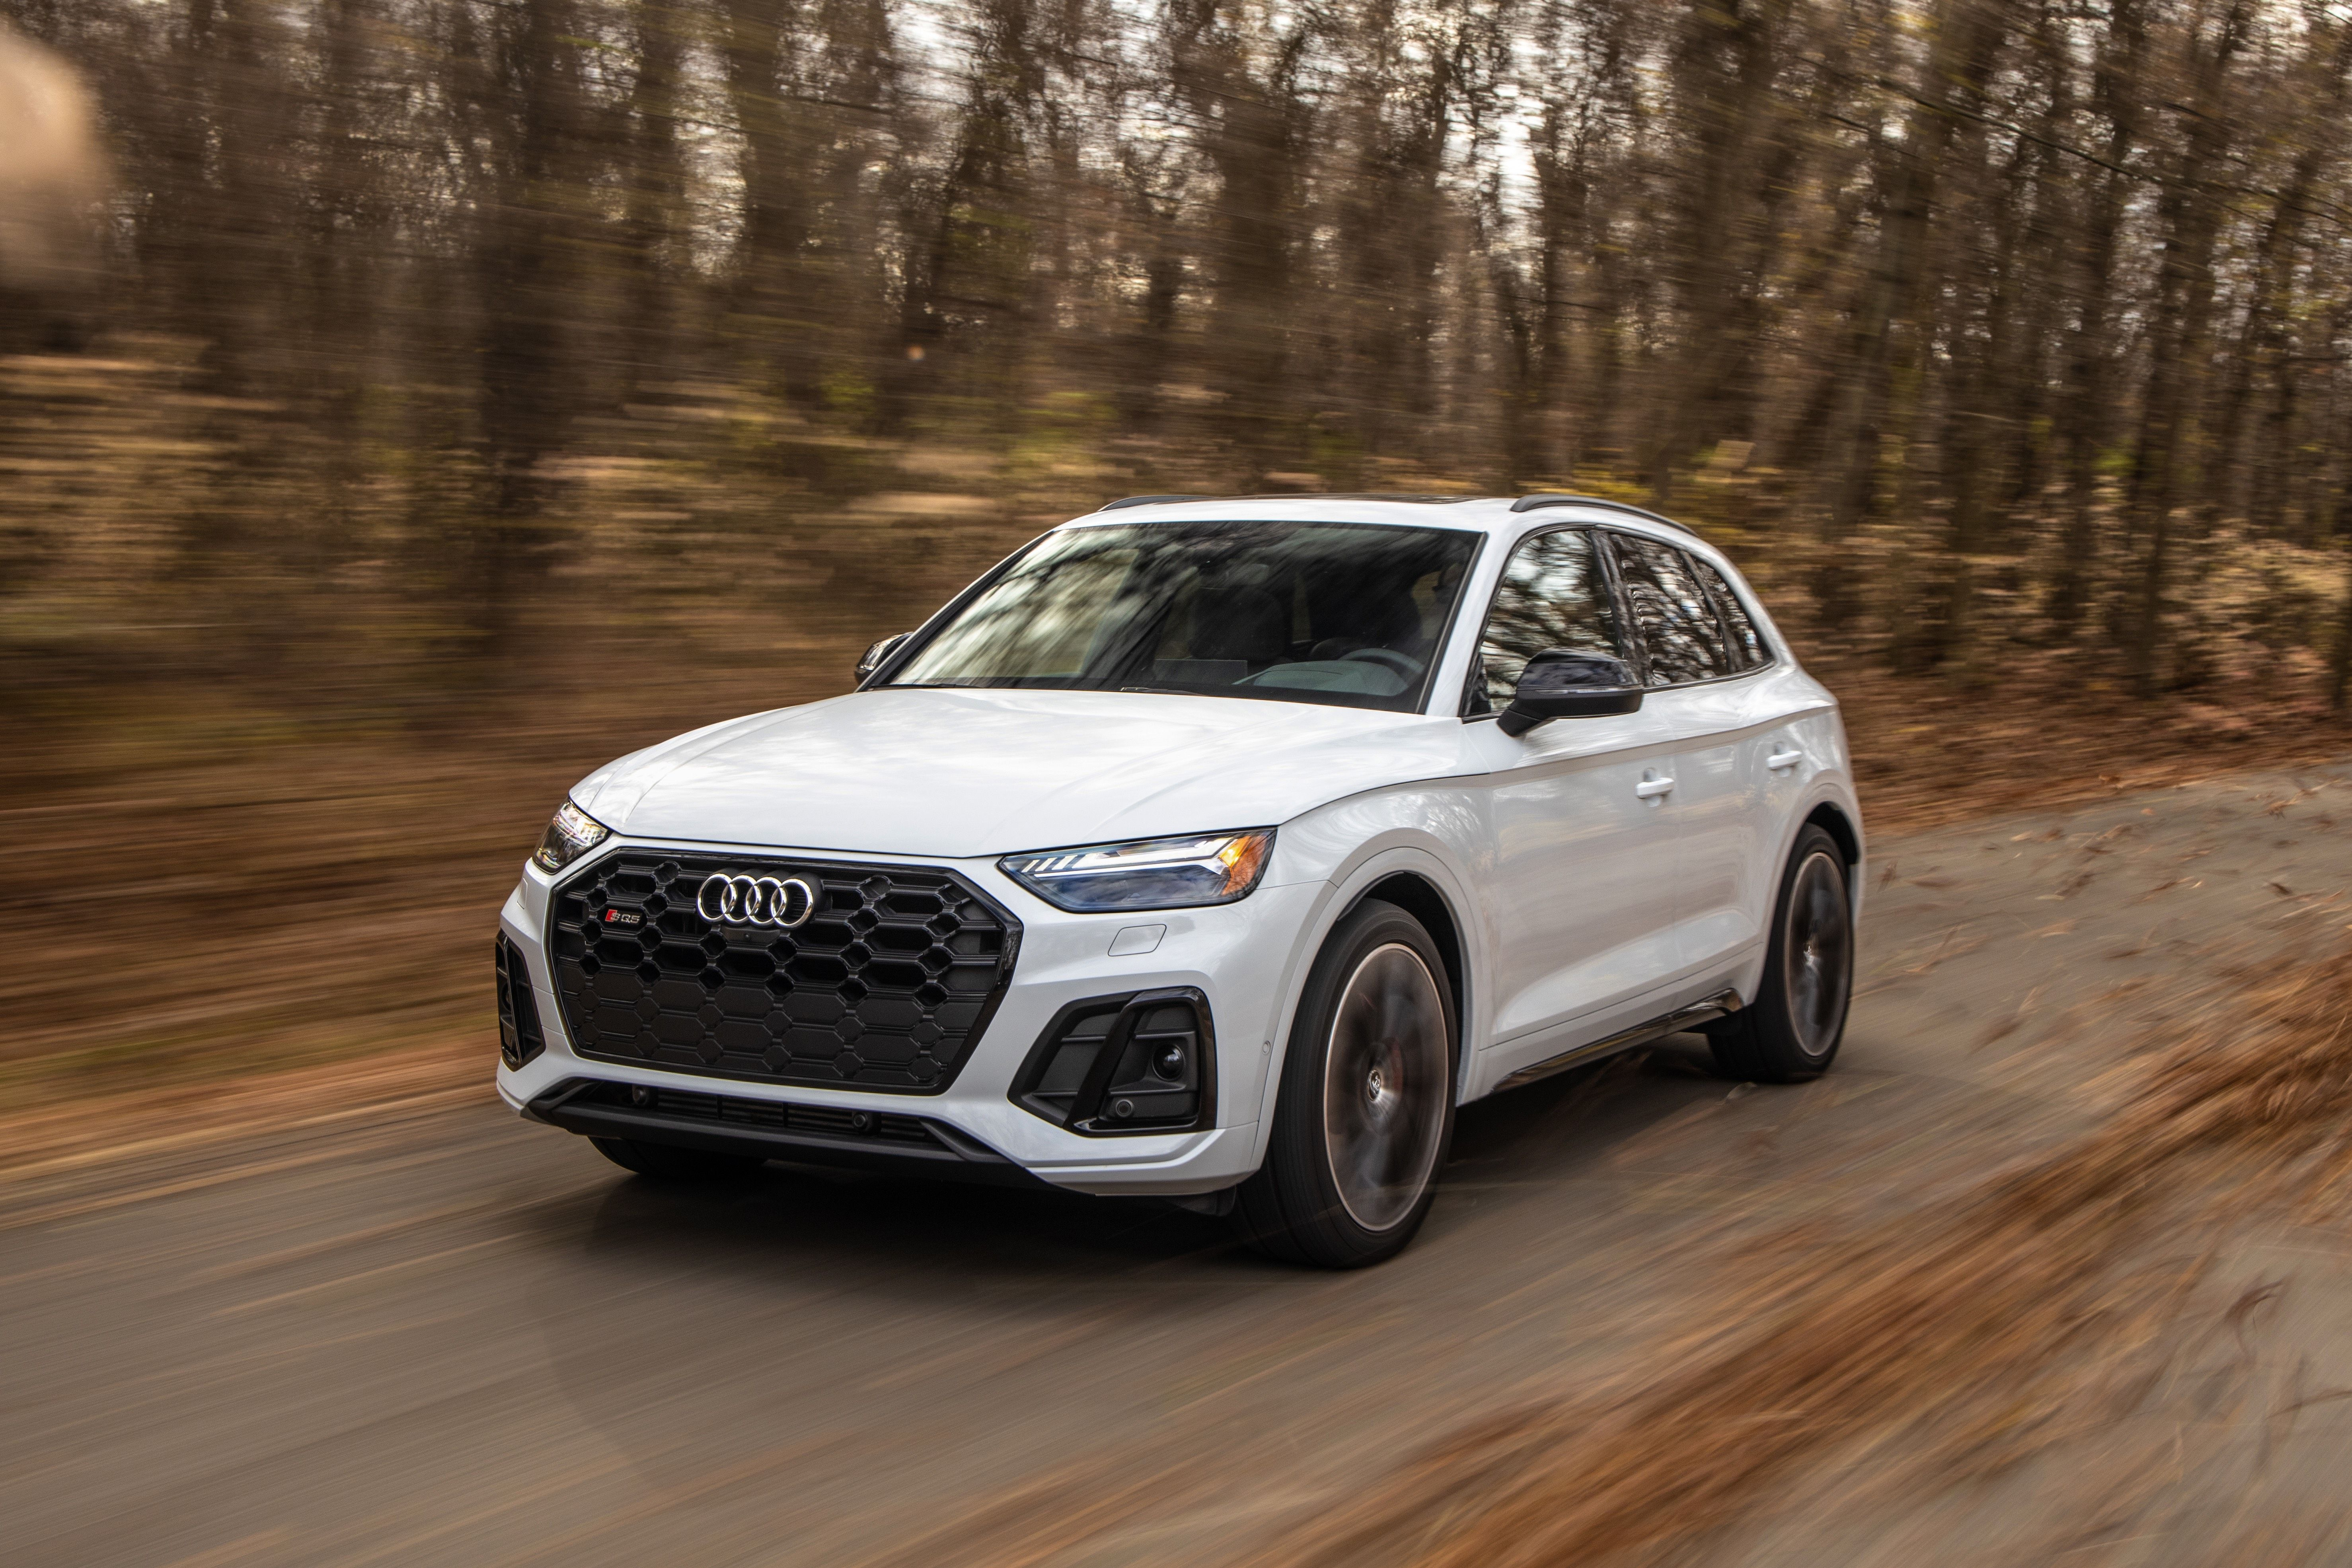 A Greener 2021 Audi Q5 Line Up Allows The Sq5 To Get More Red